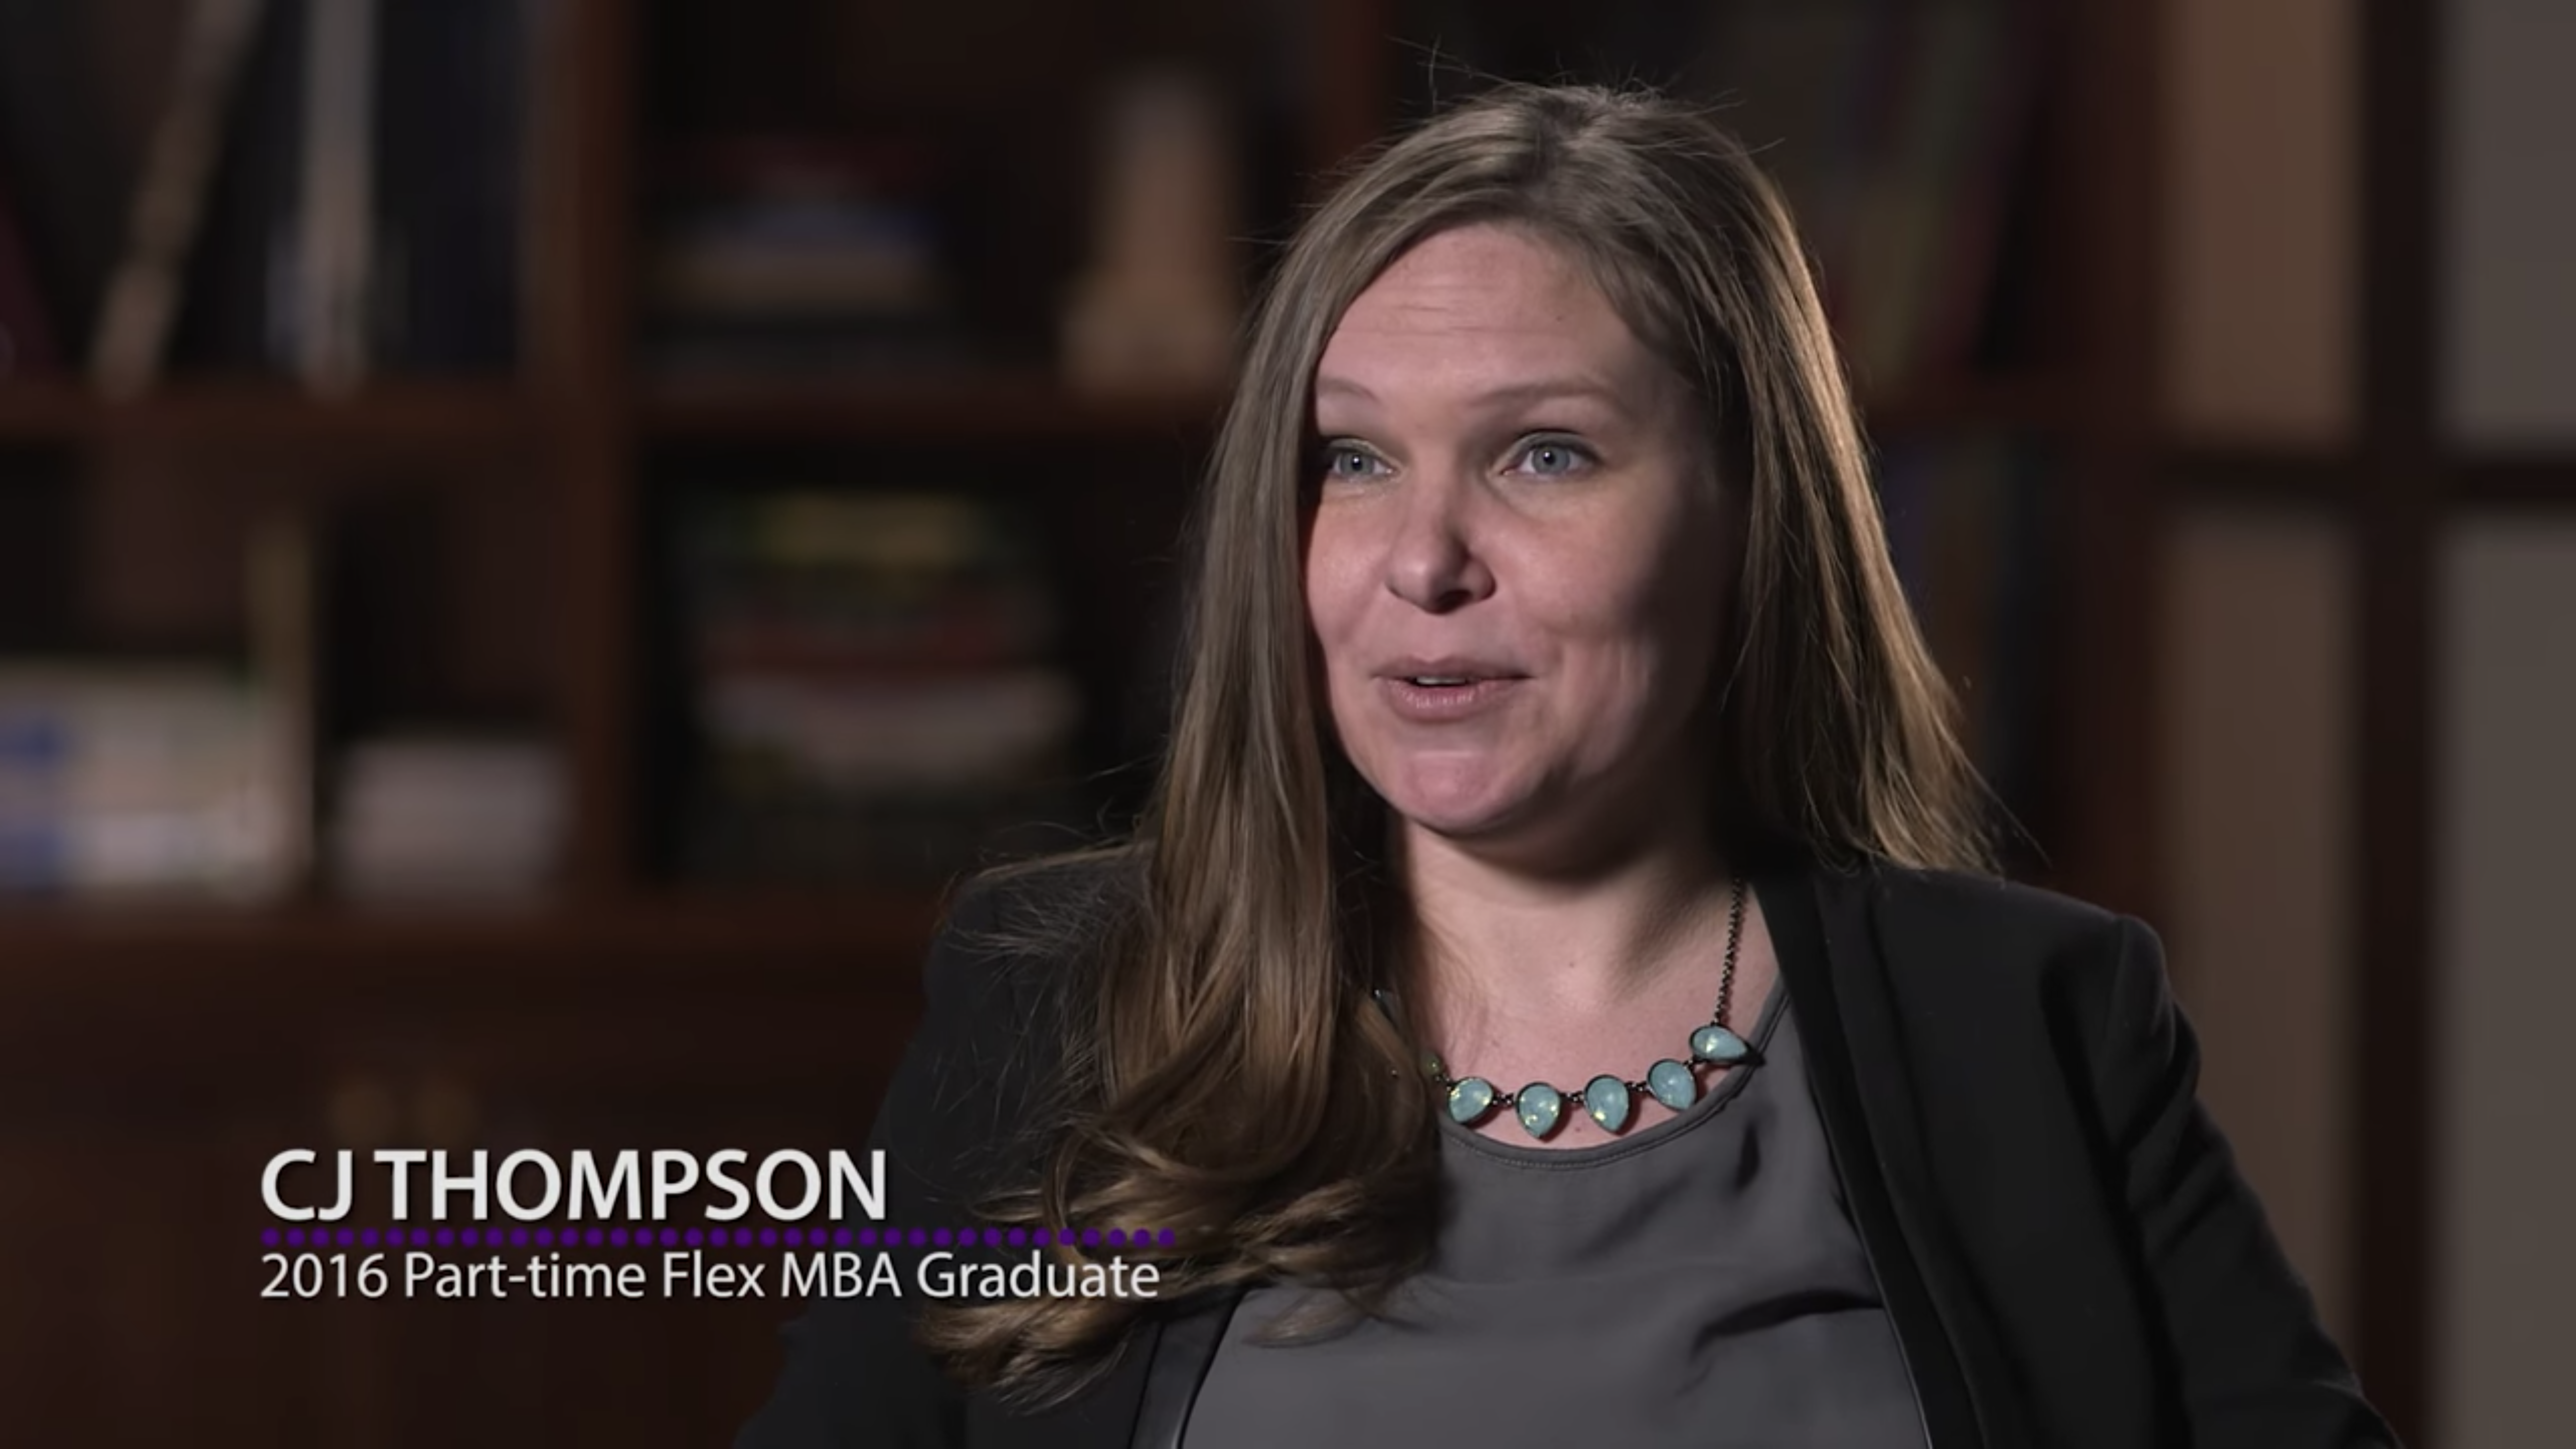 CJ Thompson '16 talks about her experience in the Part-time MBA program.